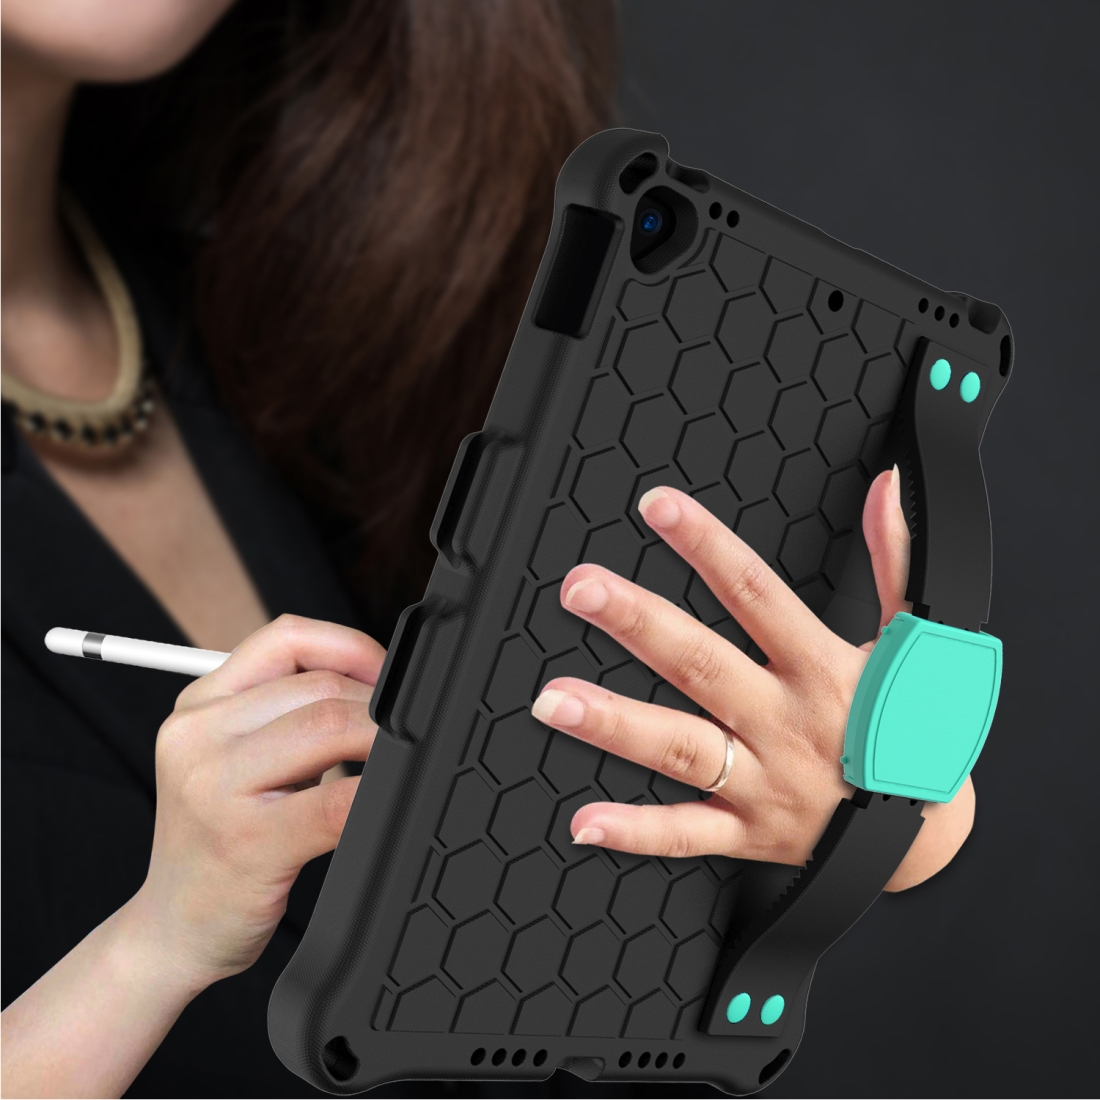 iPad 7th Generation Case (10.2 Inch) Honeycomb Design Shockproof Protective Case (Mint Green)